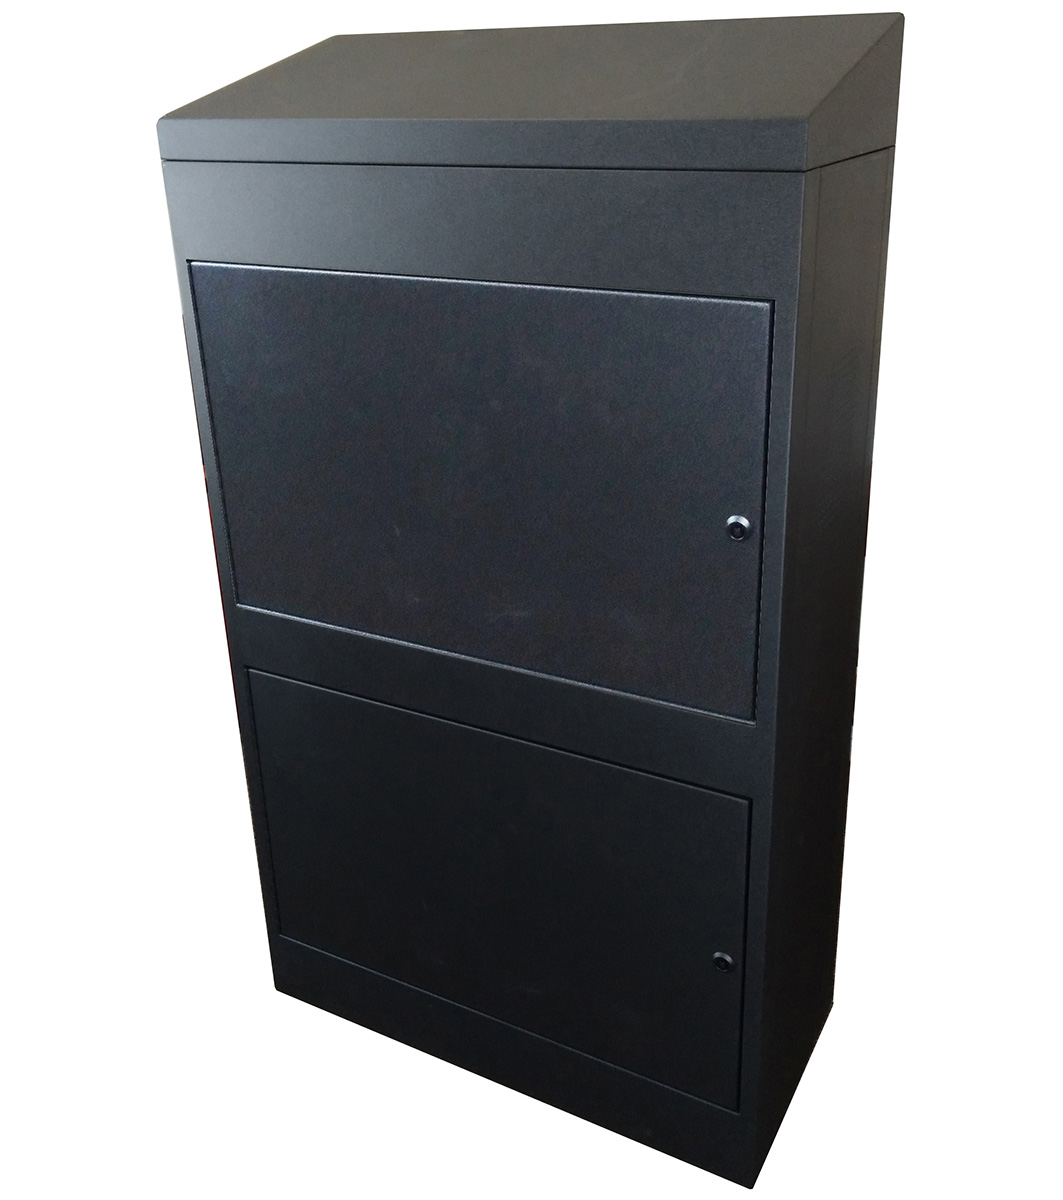 TV Enclosure Ligature Cabinet